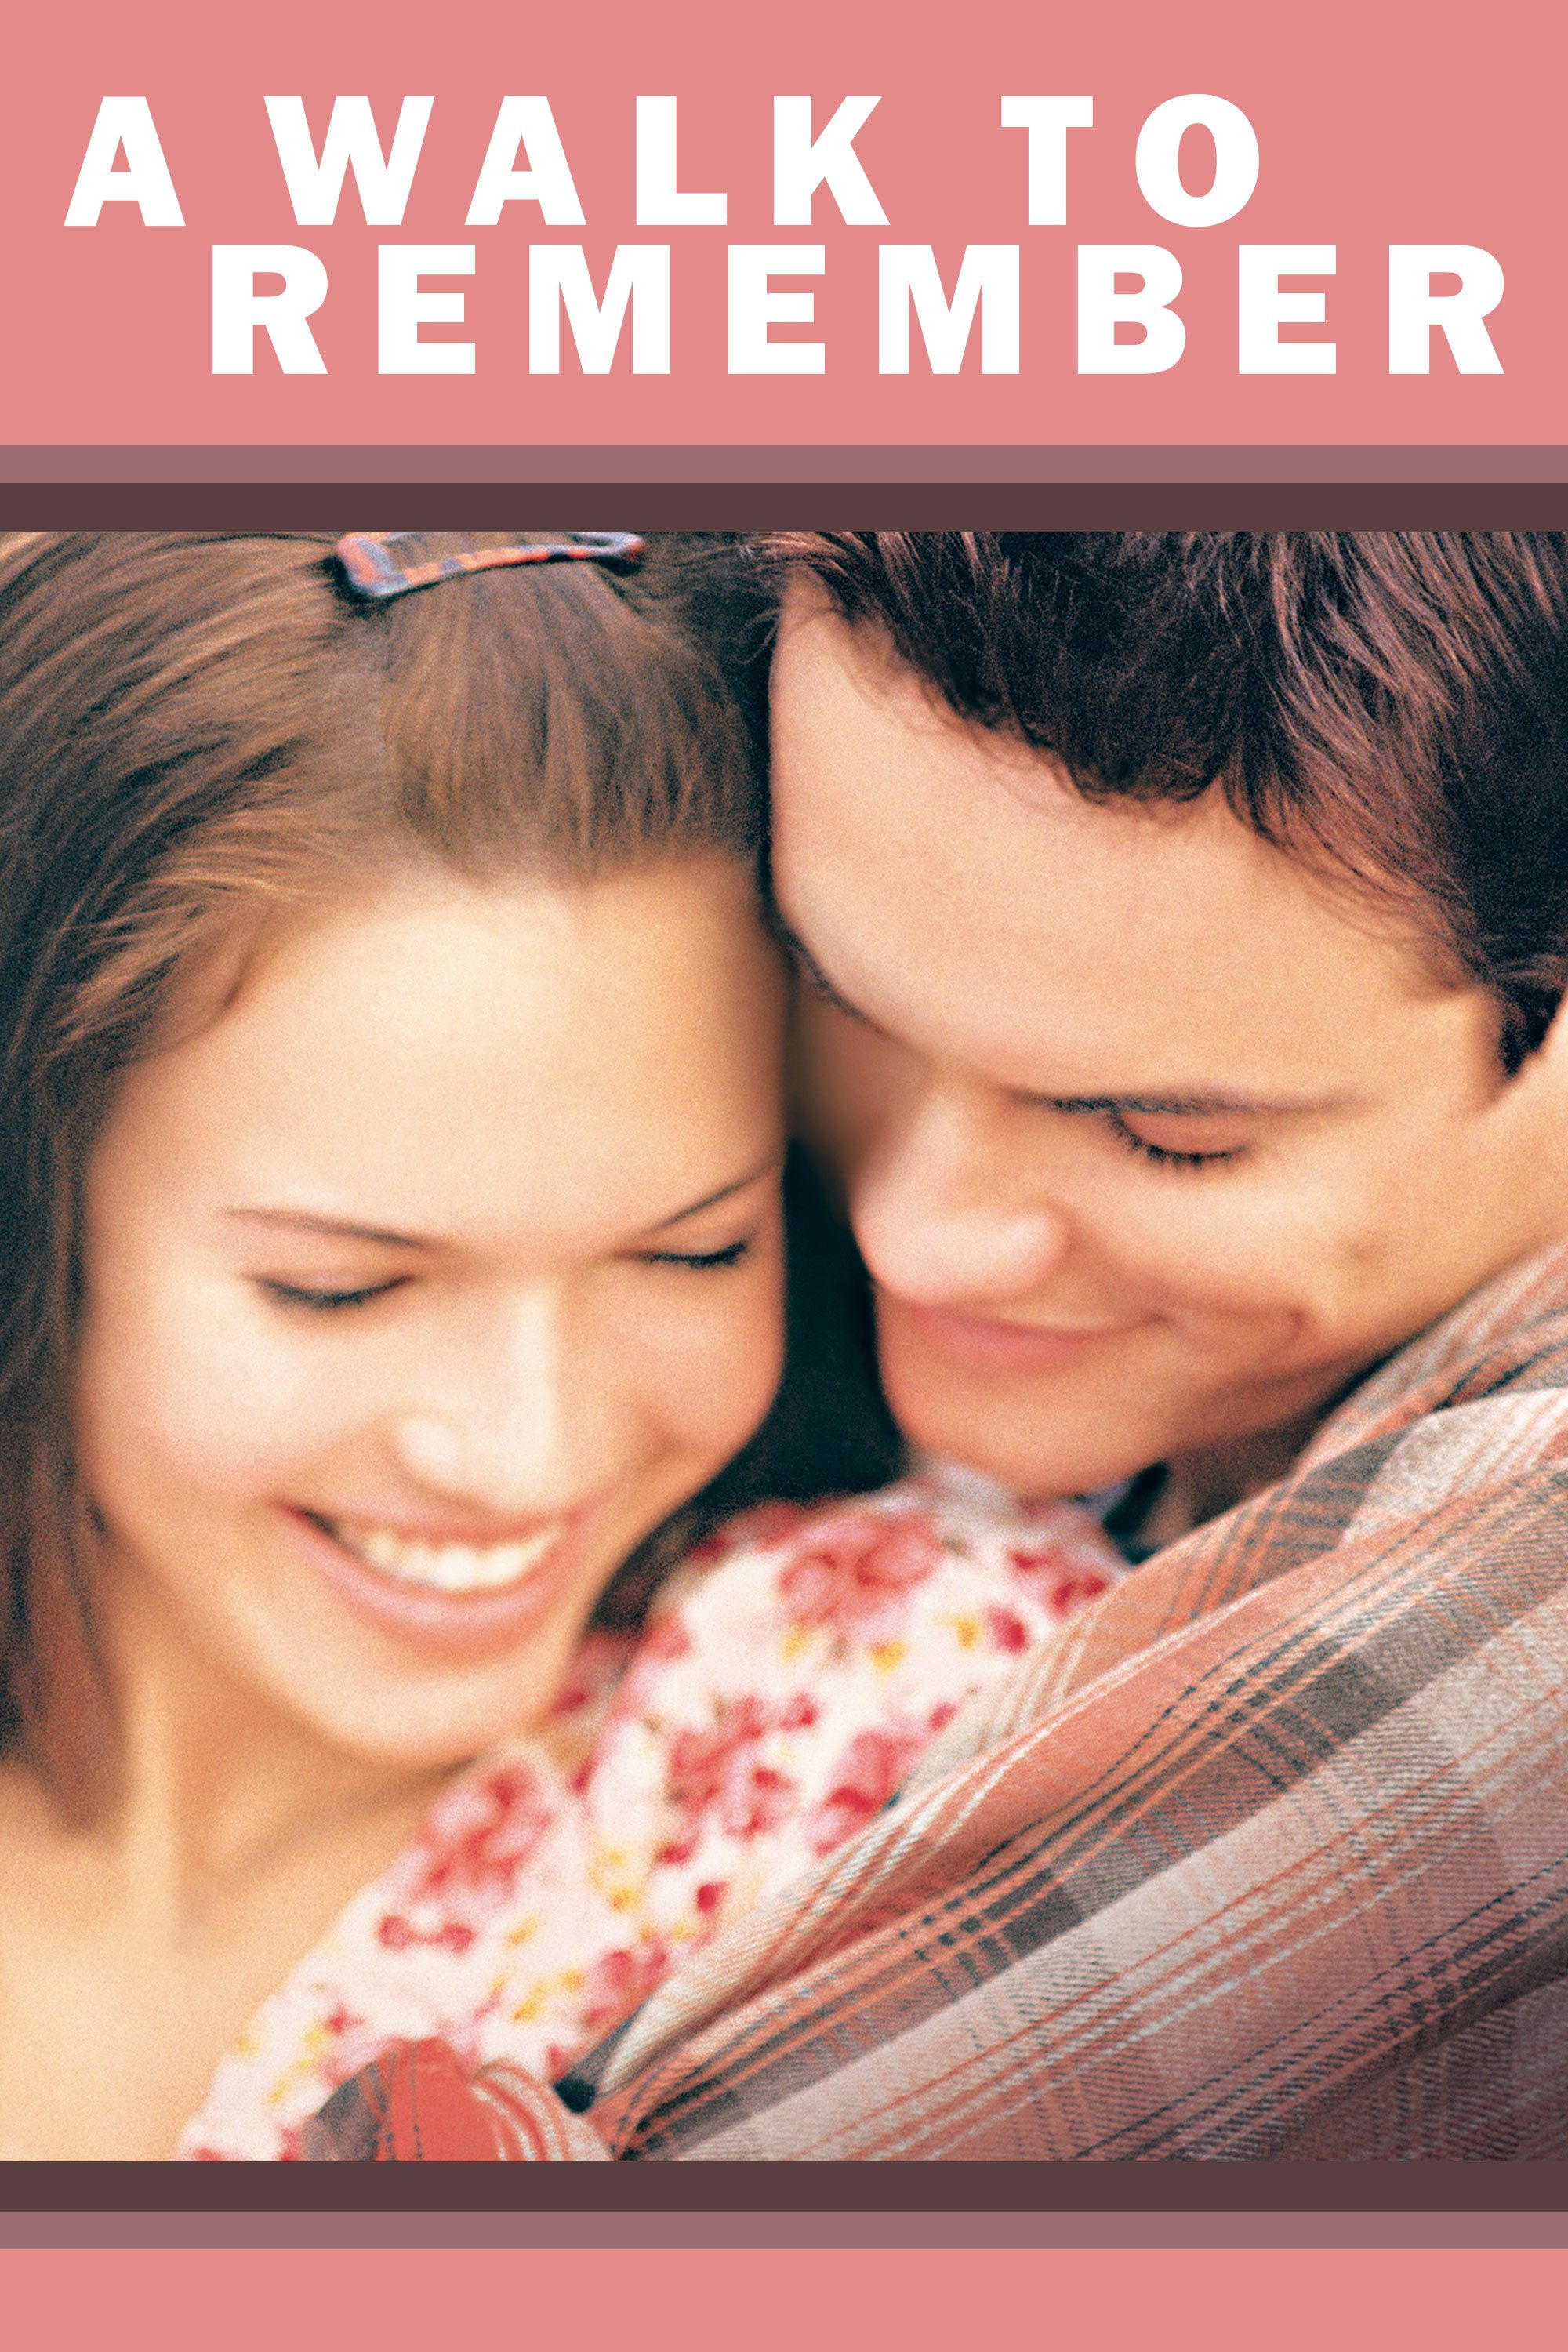 A Walk to Remember | Full Movie | Movies Anywhere